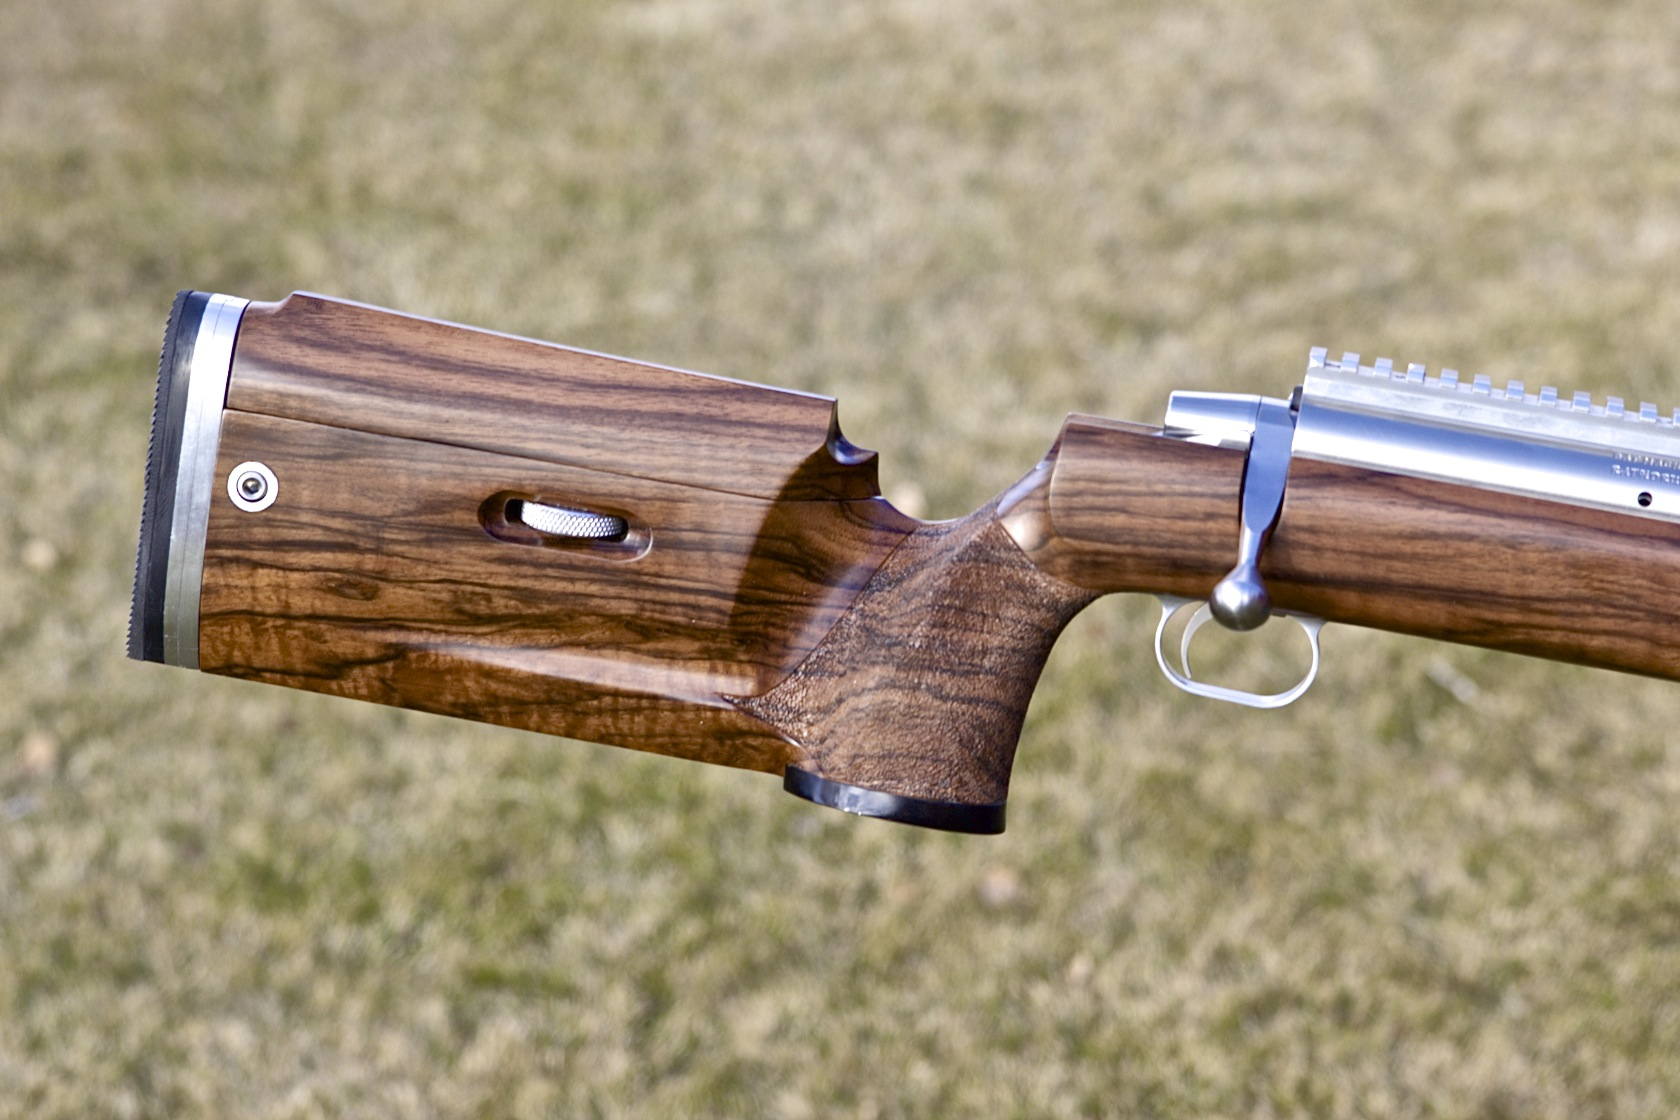 English Walnut Stock for a Bat Action Completed | Doan ...